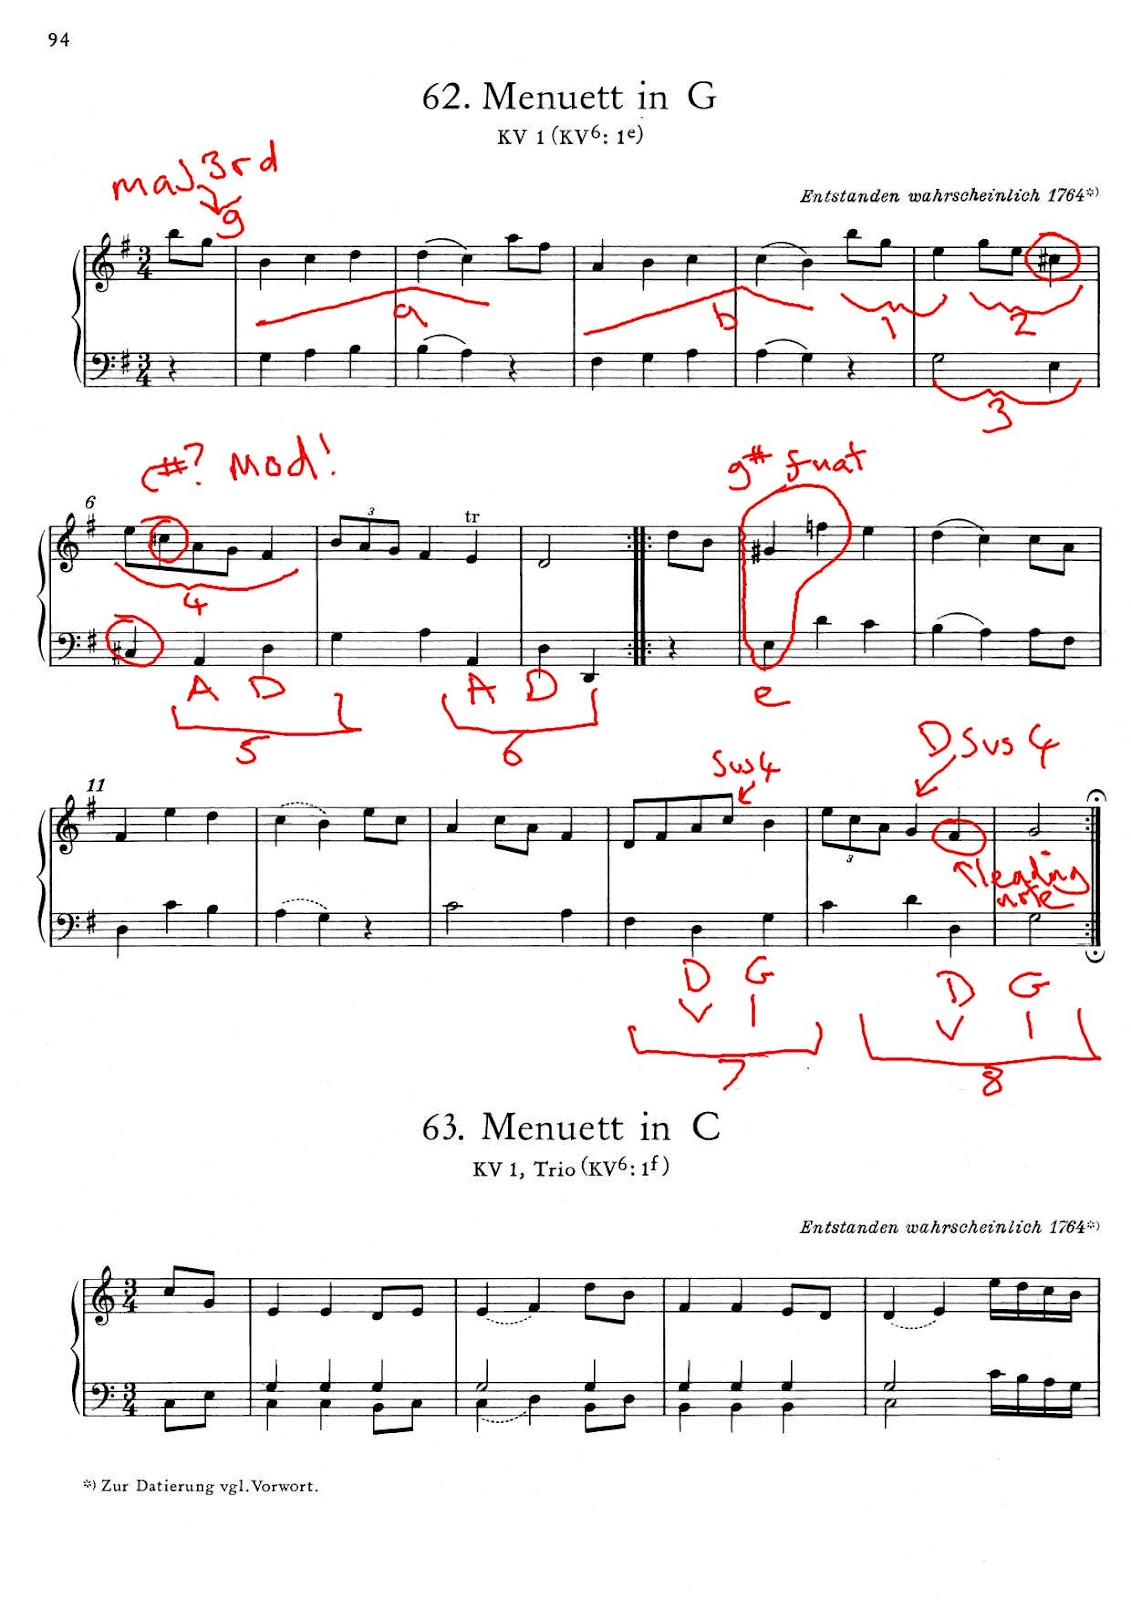 minuet in g analysis Download and print top quality minuet in g sheet music for piano solo by johann sebastian bach fingerings included, edited by oriol lopez calle with mp3 and midi files.